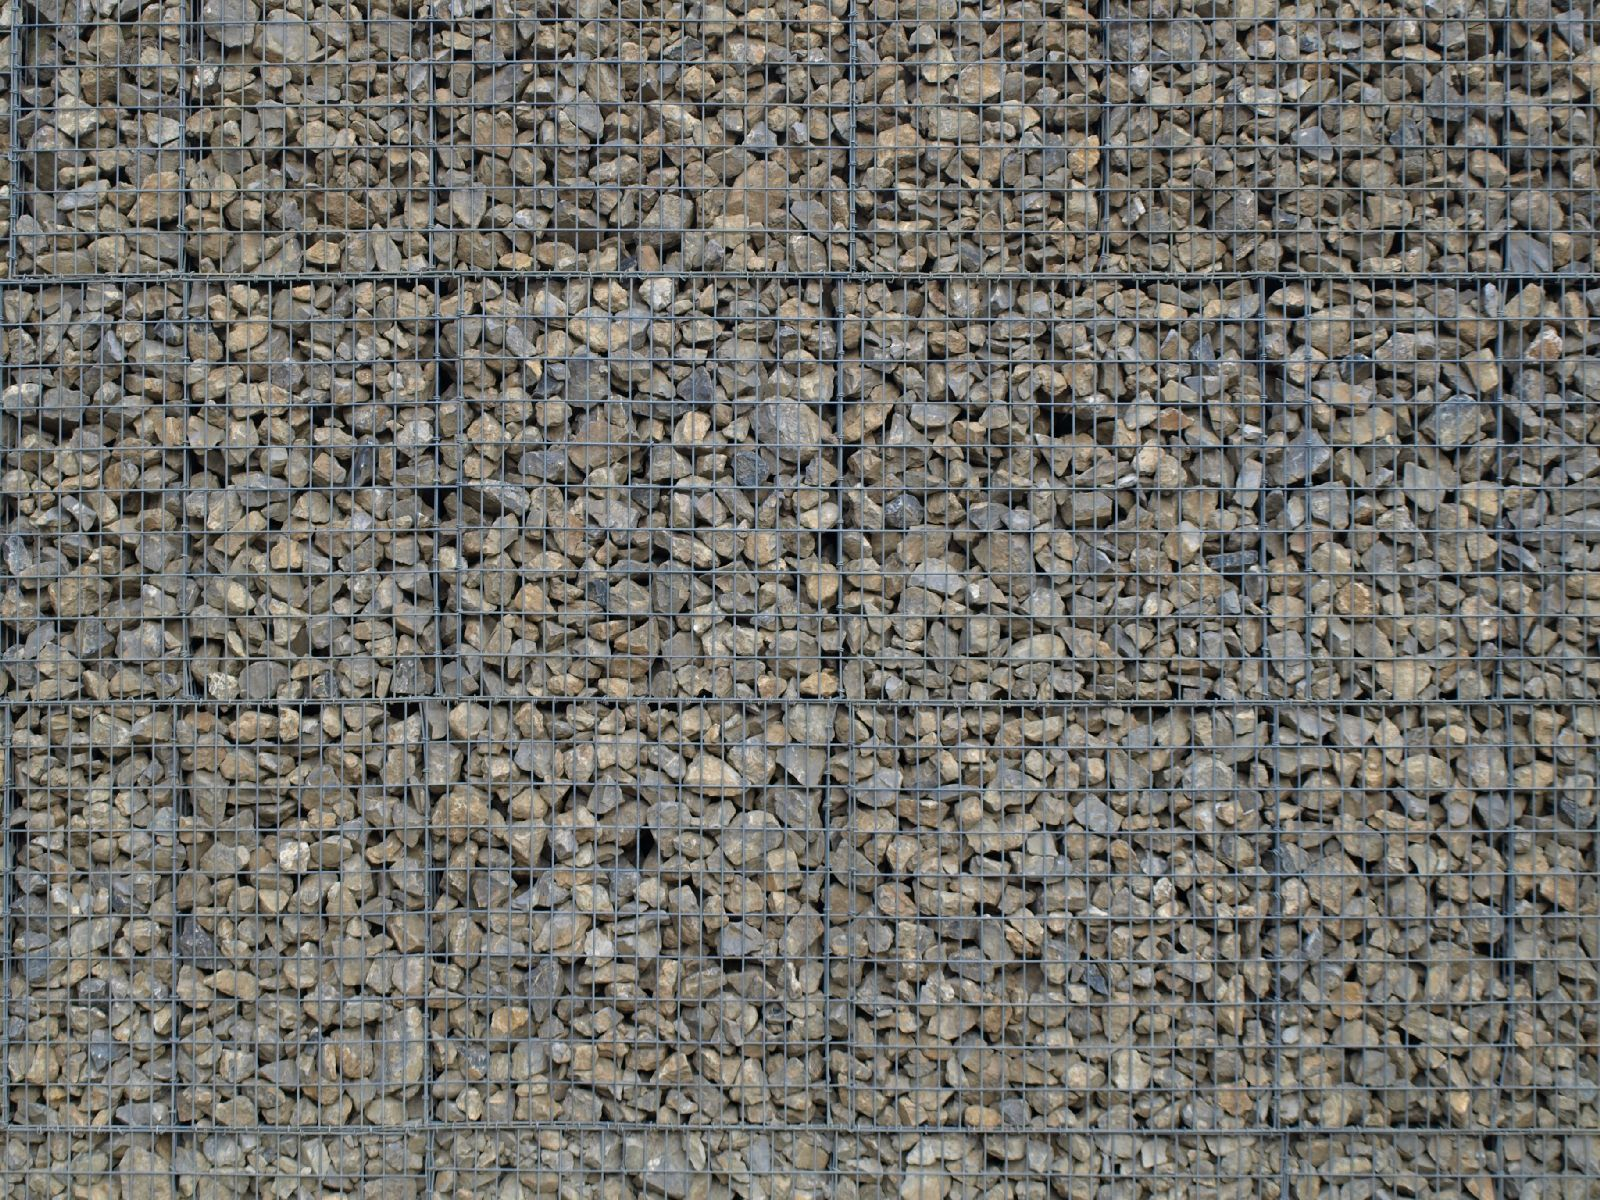 Stone_Texture_A_P9074784